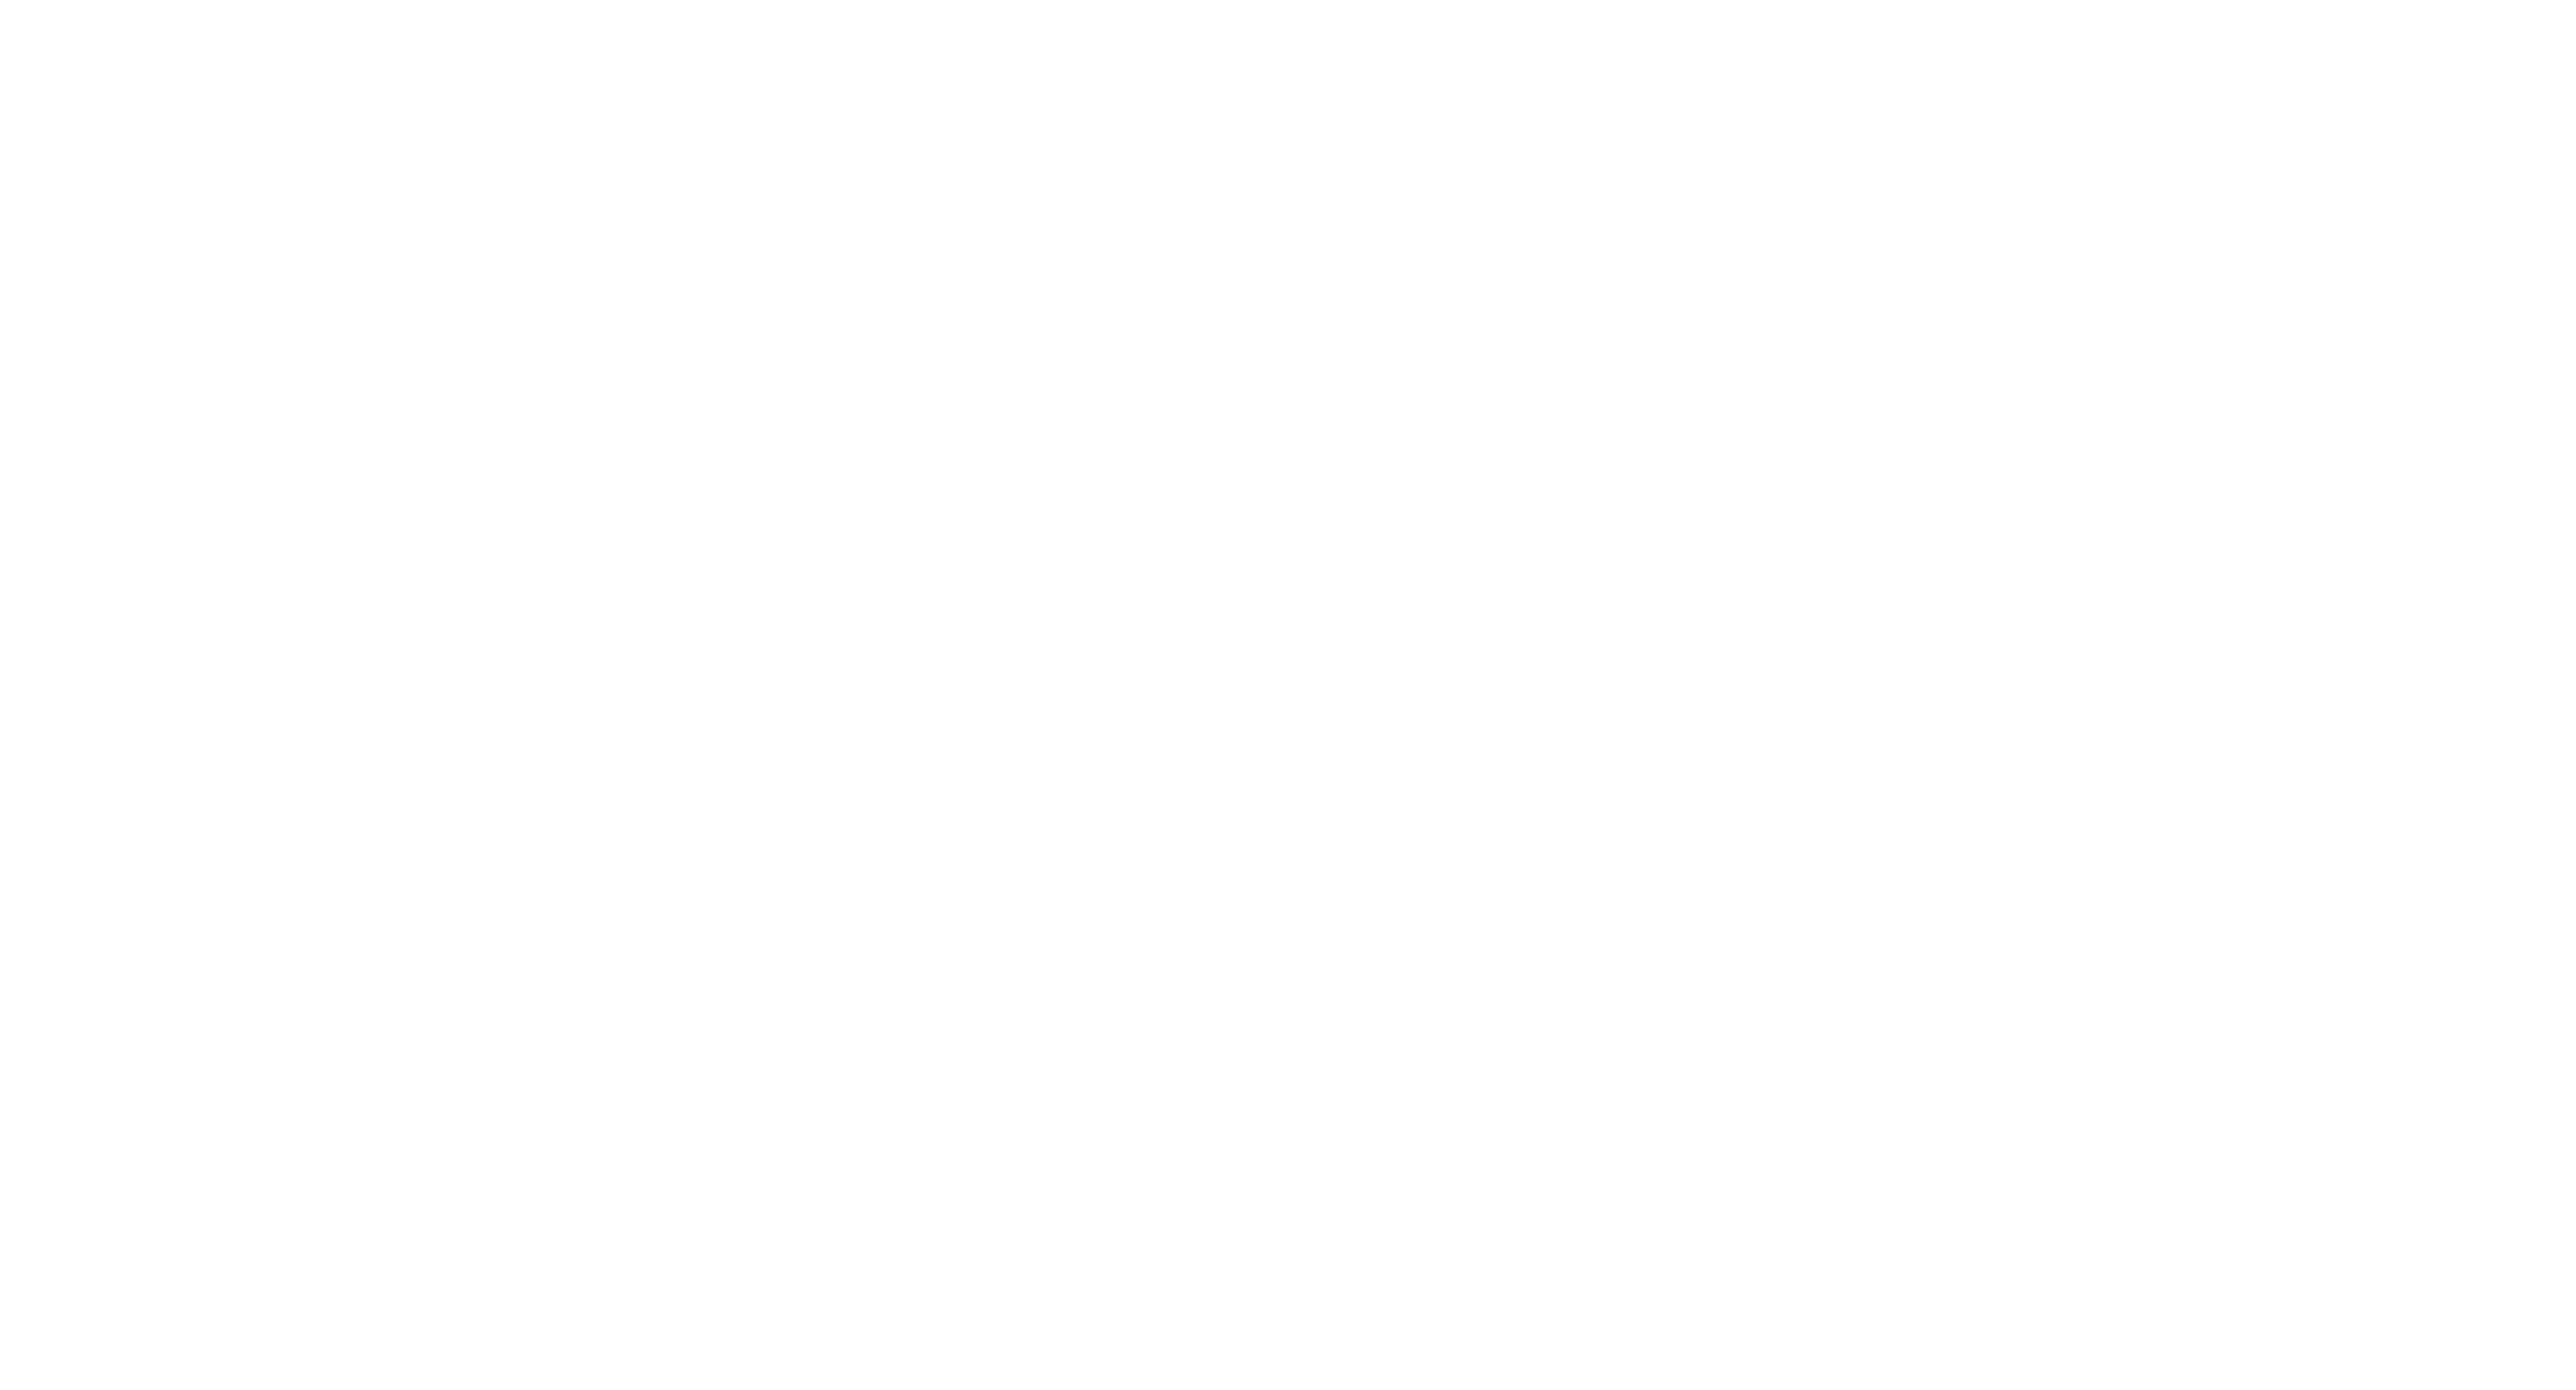 Sheffield Liberal Democrats